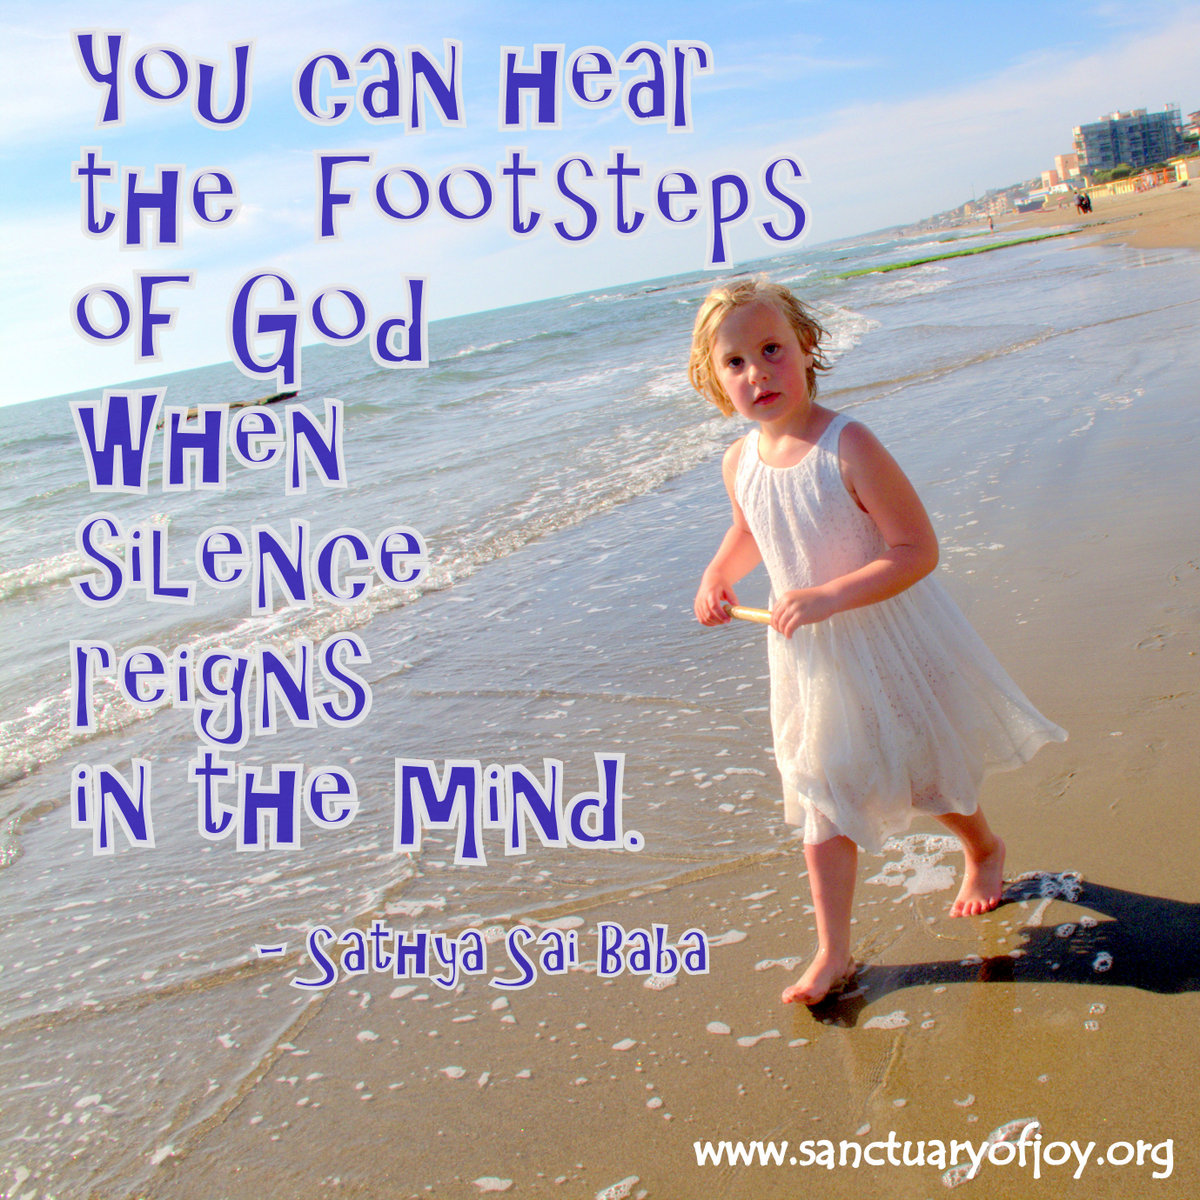 You can hear the footsteps of God when silence reigns in the mind